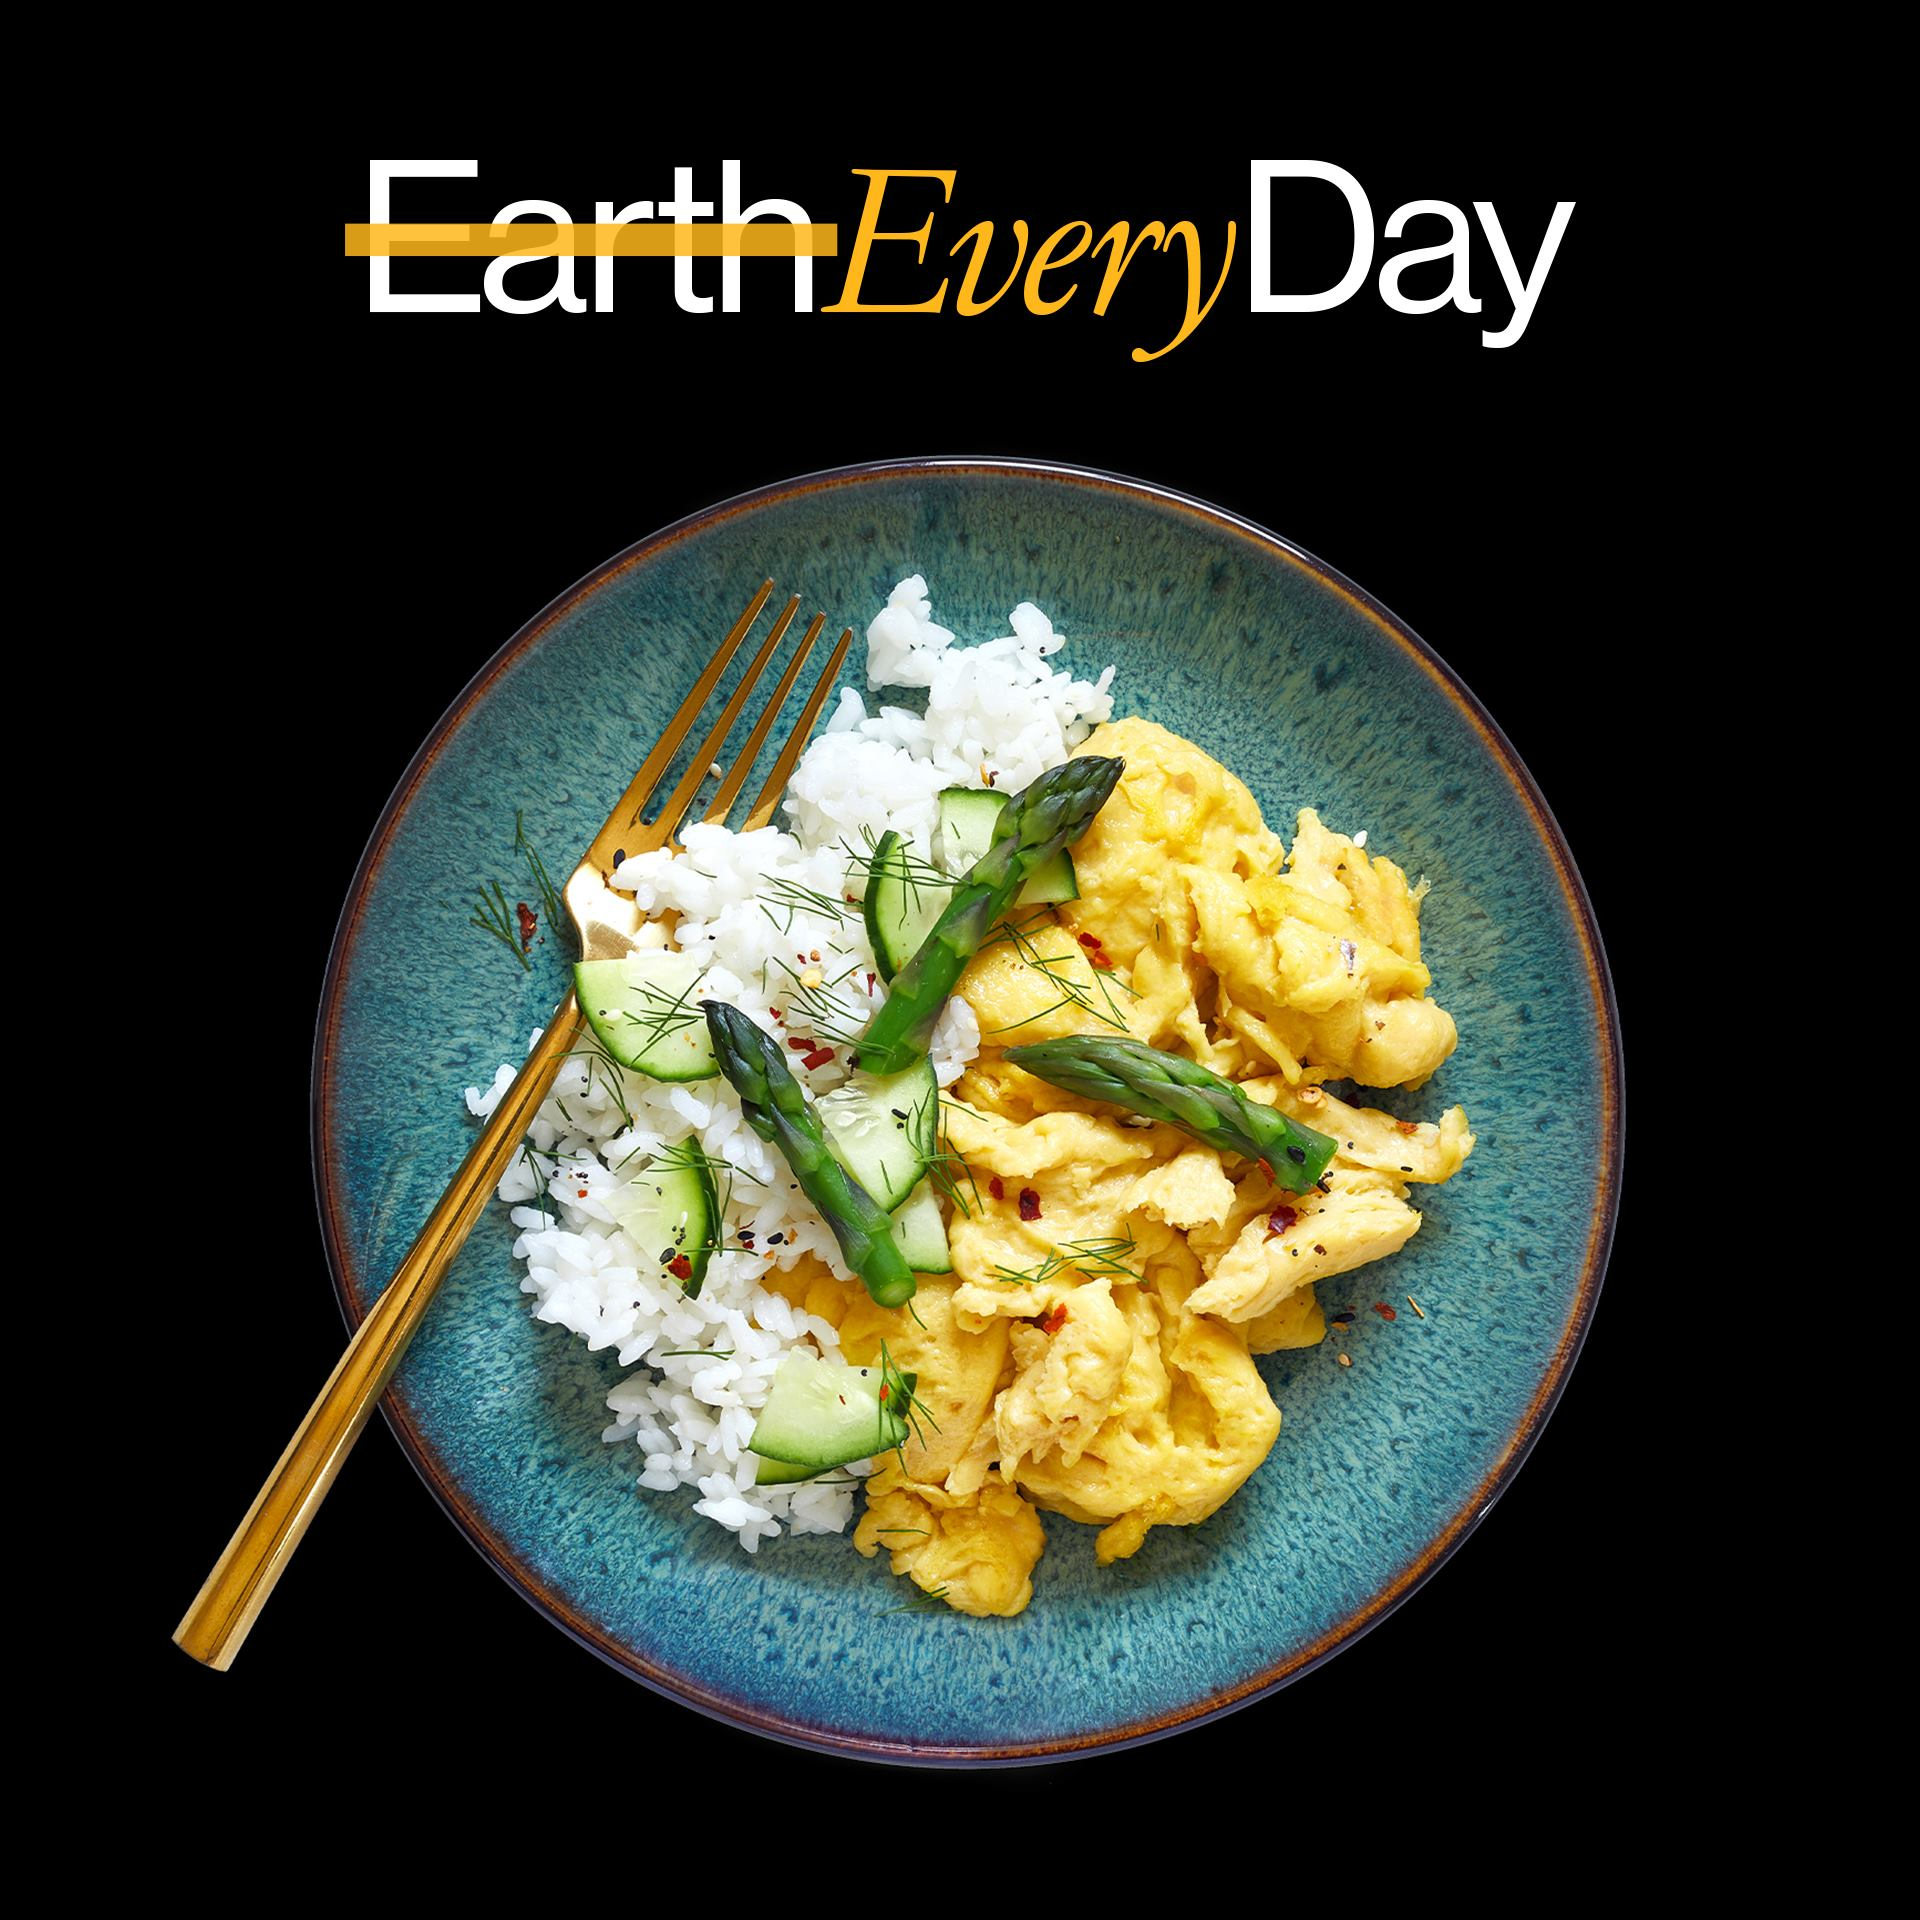 Eat For The Planet campaign by JUST